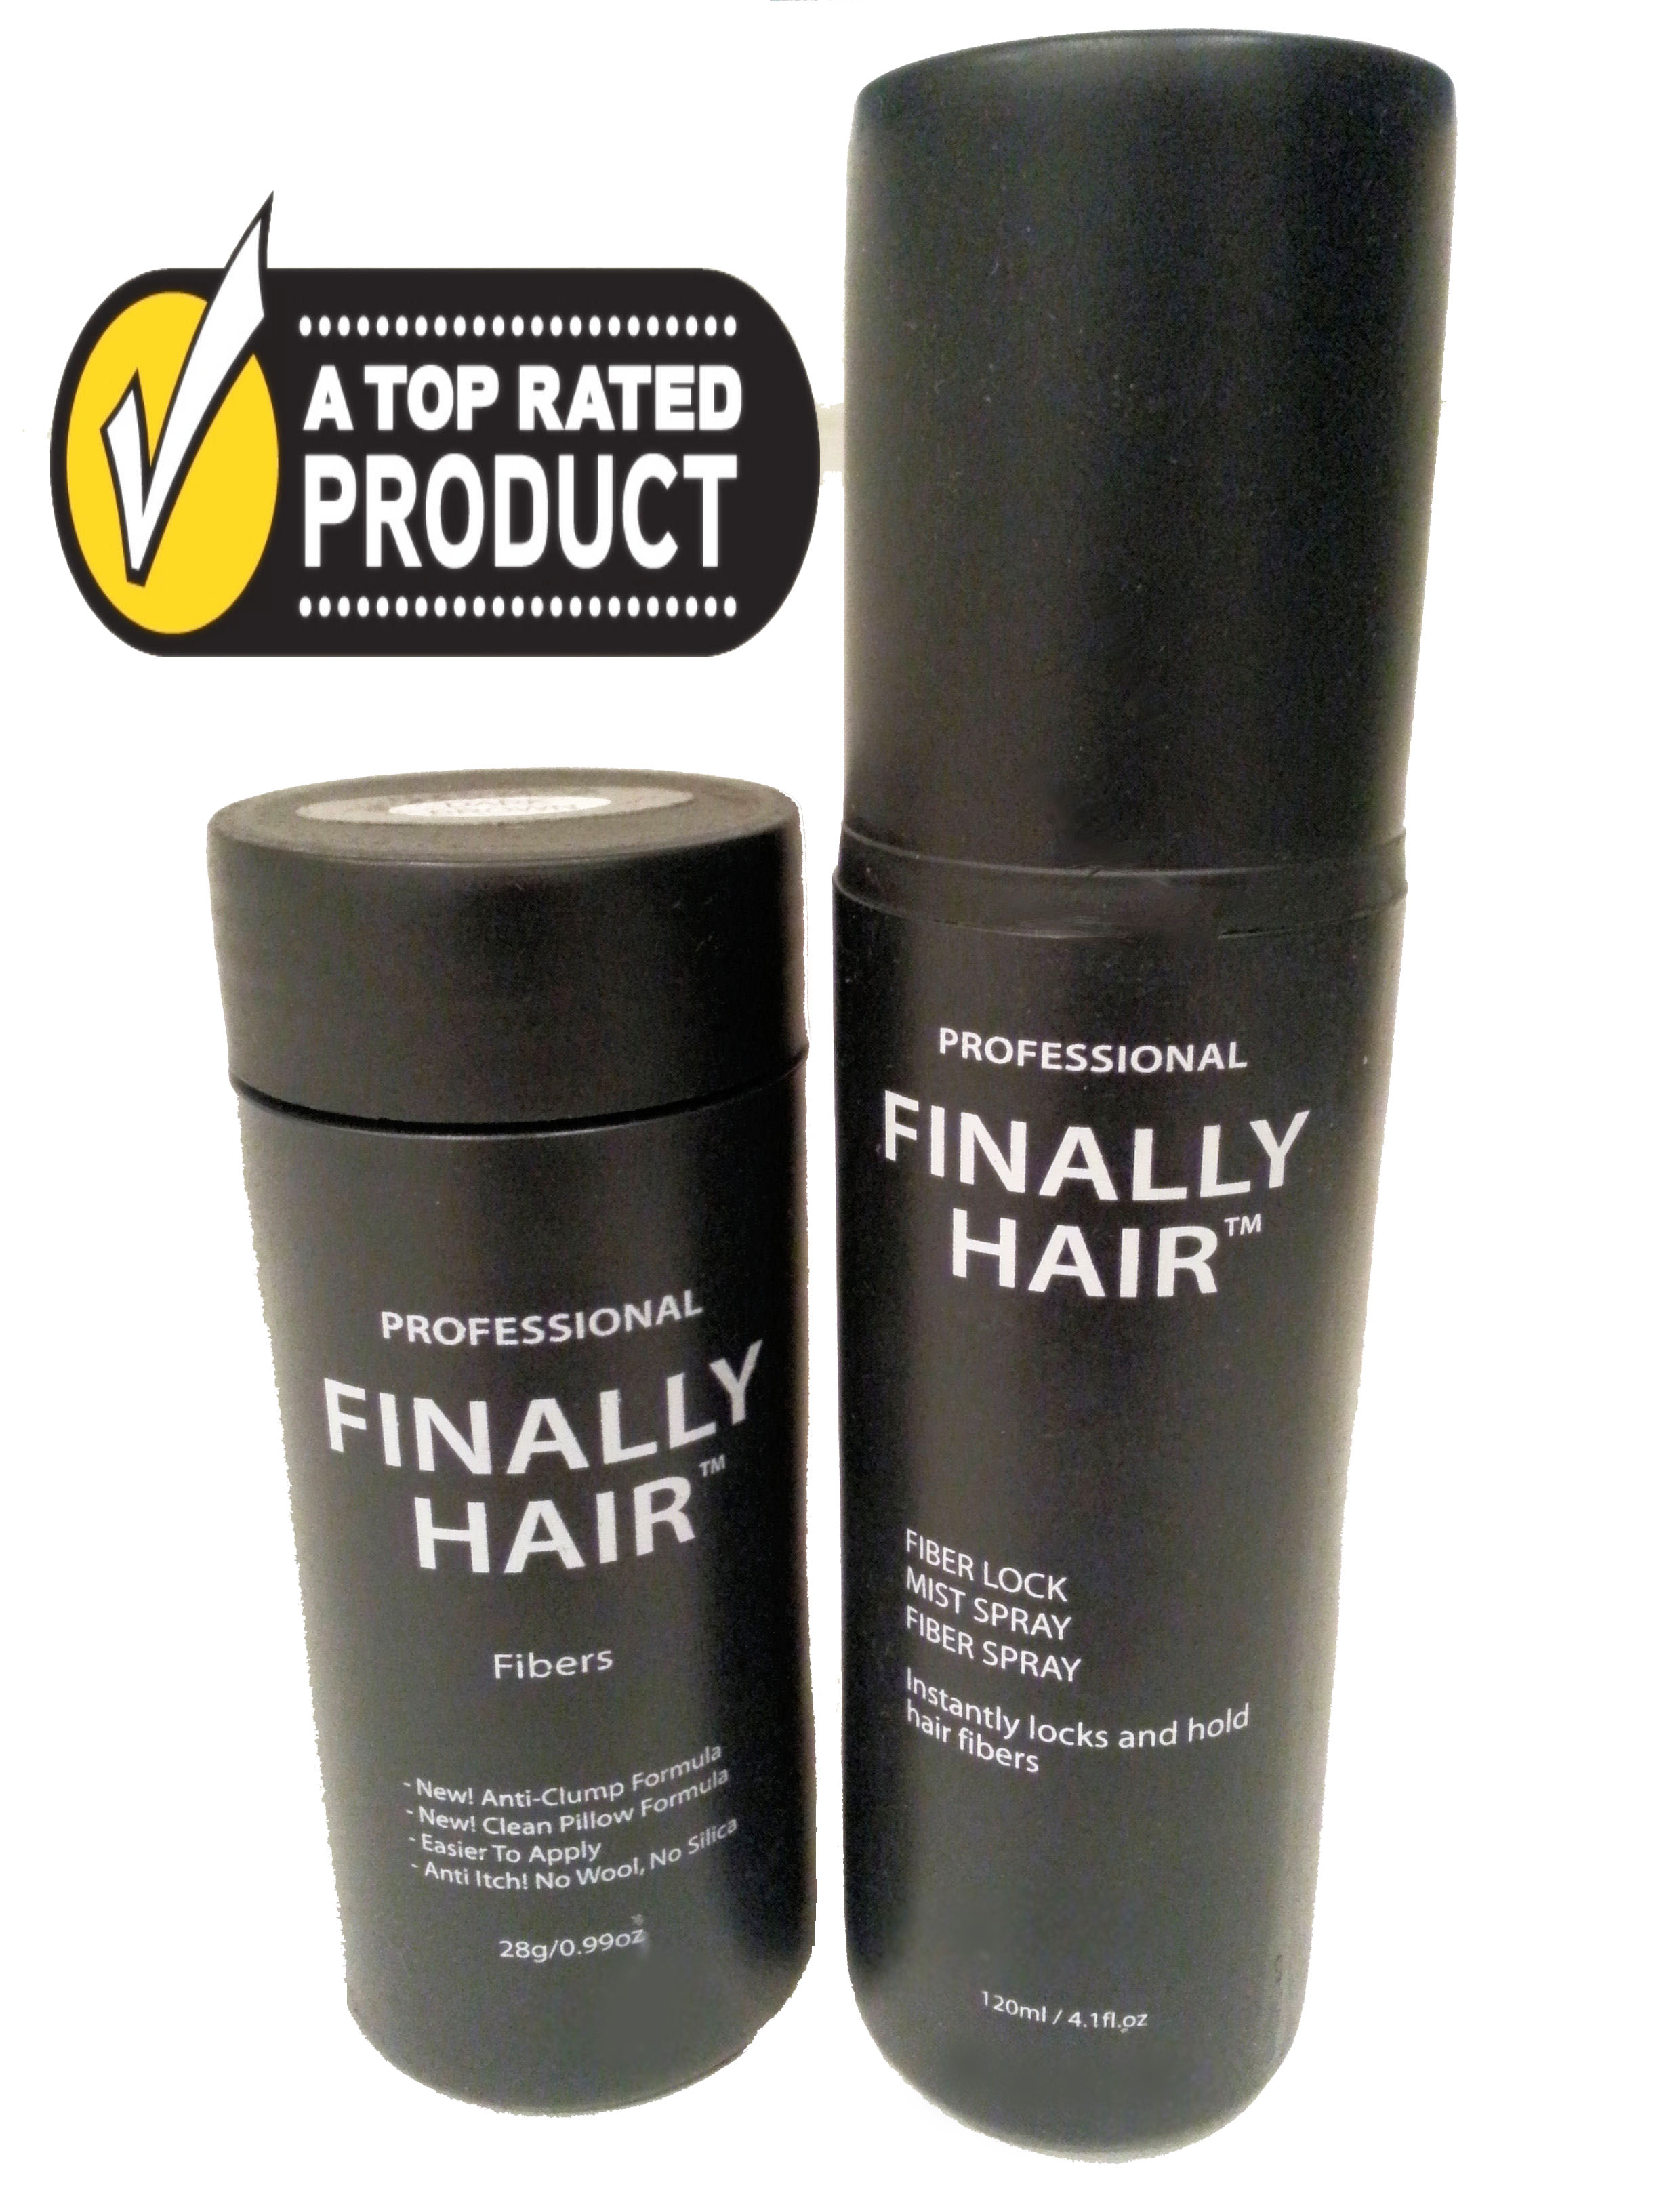 hair fiber Products 1 - 25 of 25 finallyhaircom - get best hair building fibers black, dark brown, light brown & more product, their results, reviews, solutions, videos, price & more.